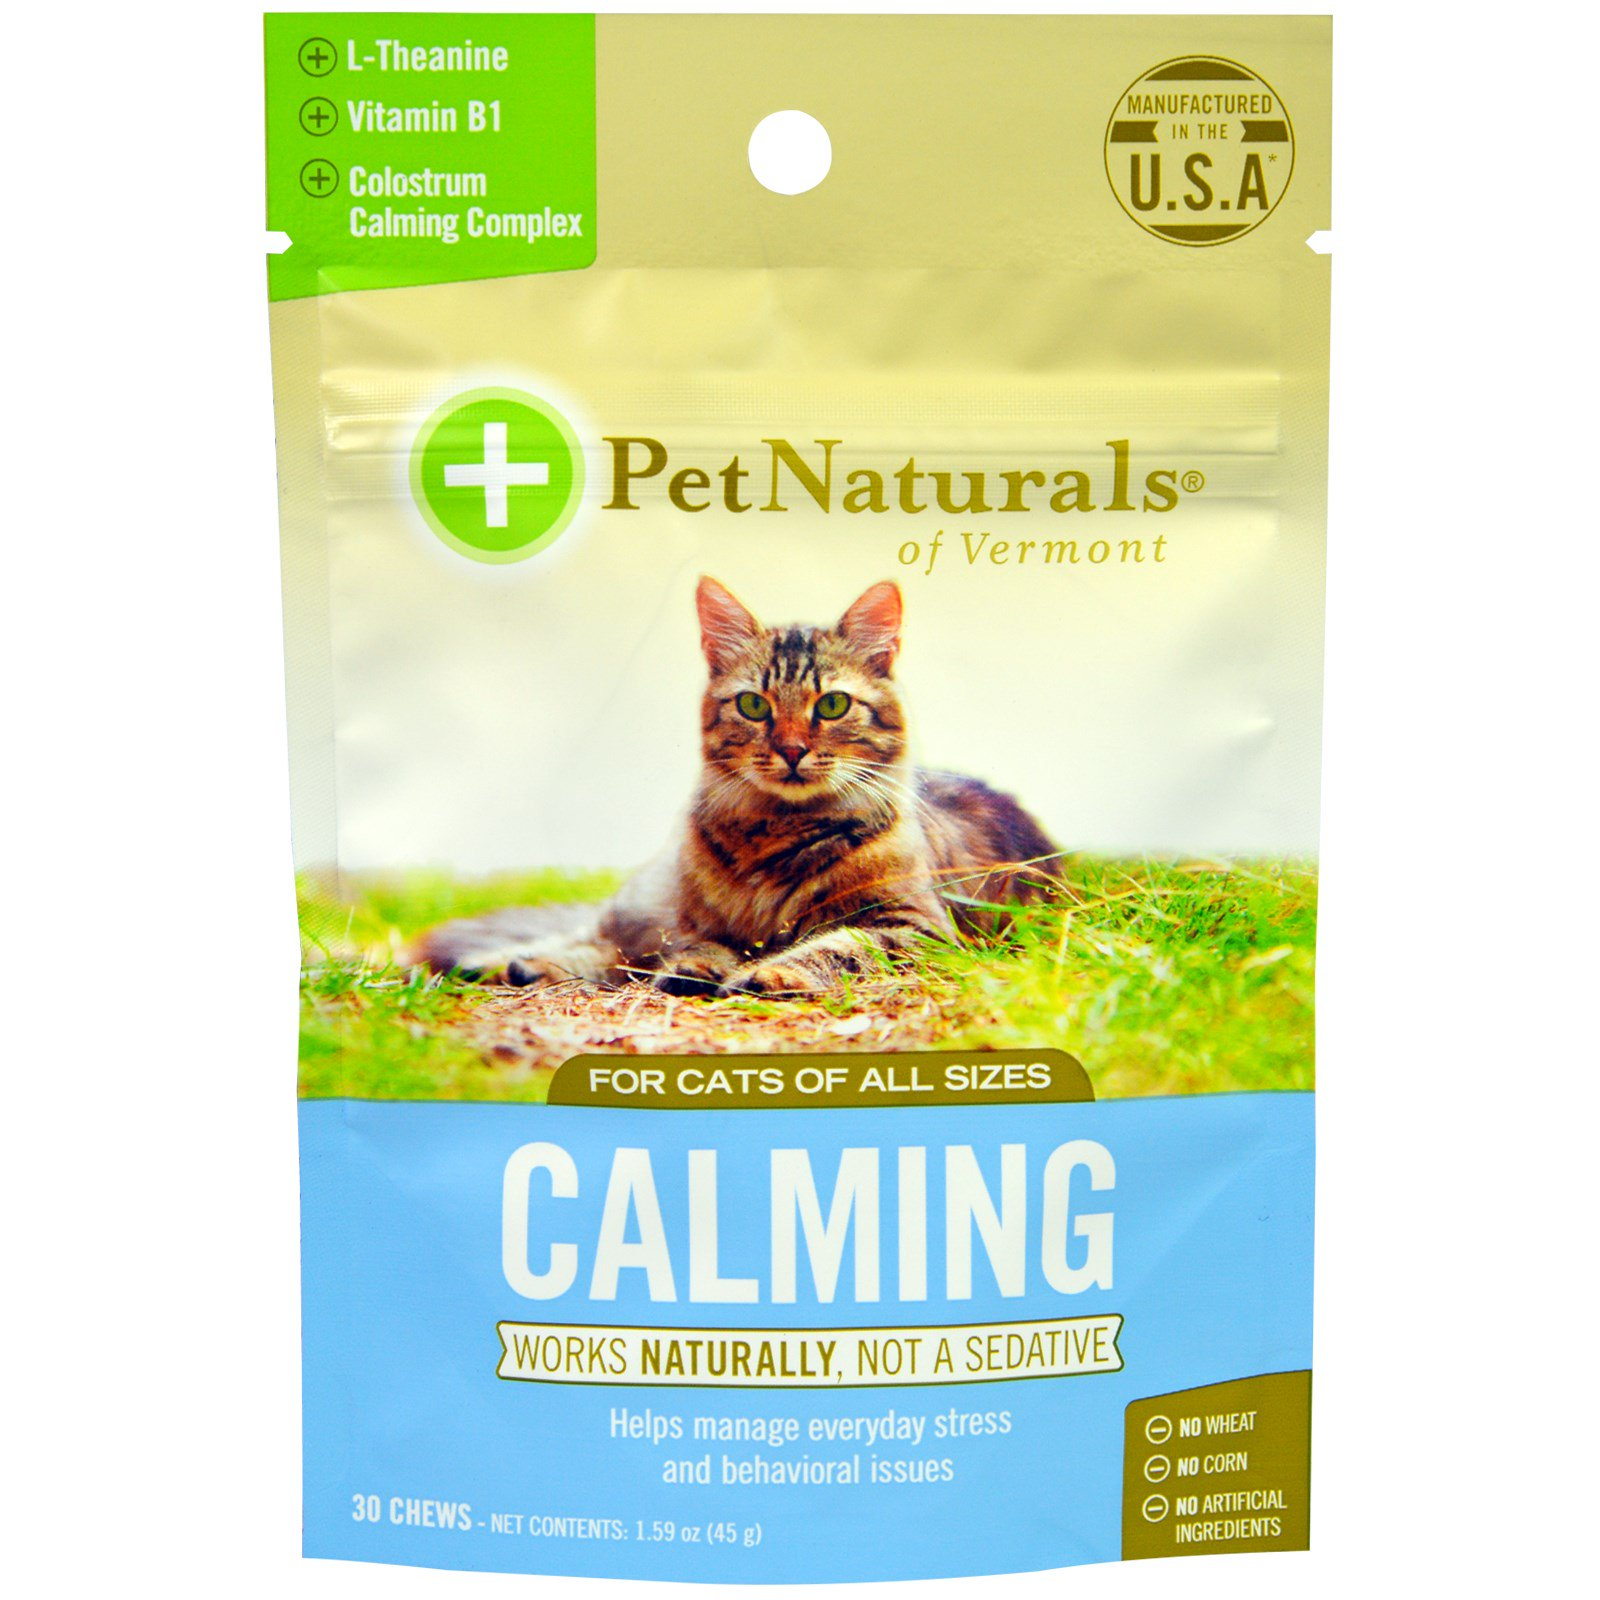 Mind Pet S Of Oz G Rescue Remedy Cats Walmart Oz Pet S Of Cats Travel Rescue Remedy houzz-03 Rescue Remedy For Cats